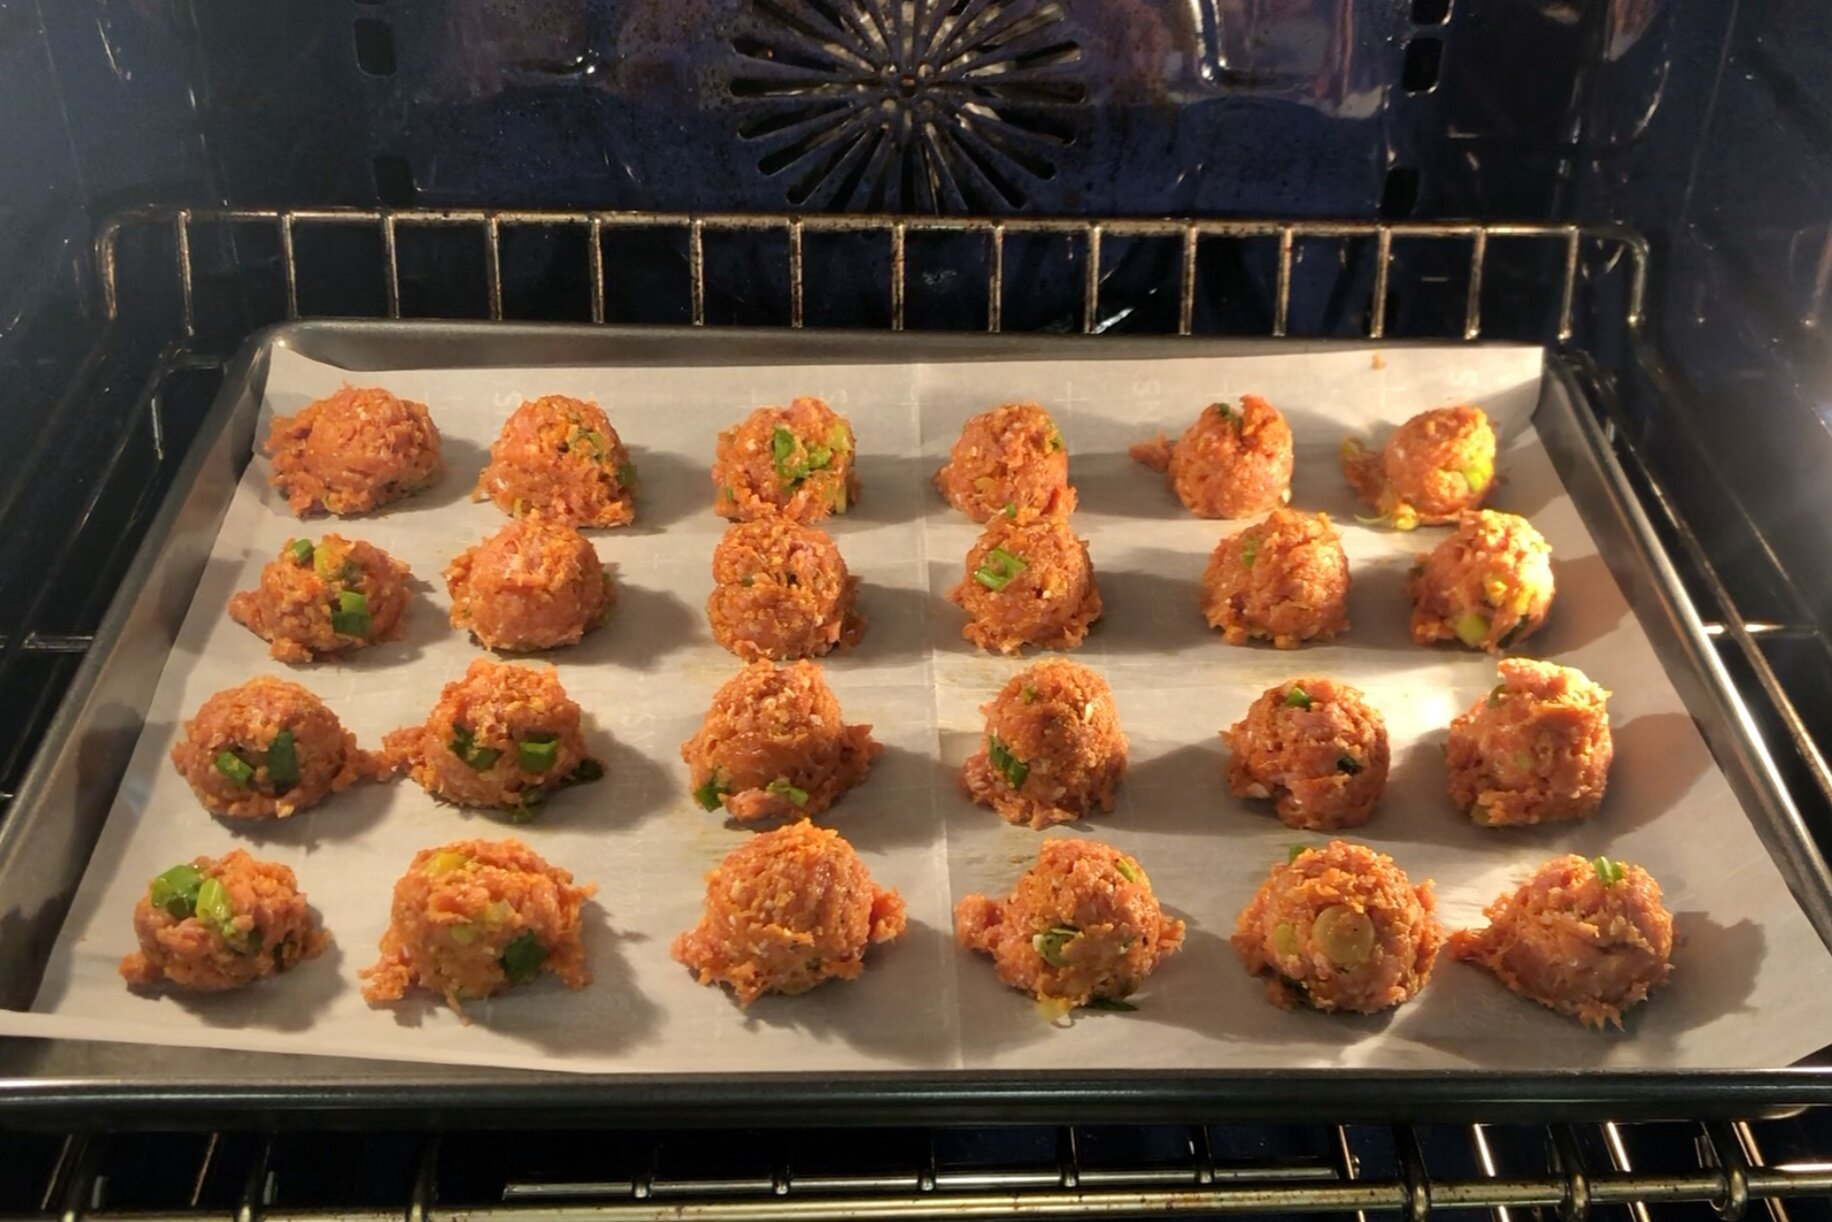 4. Bake for 20-25 minutes turning the meatballs halfway through. If using a thermometer, the internal temperature should be around 170 degrees. -